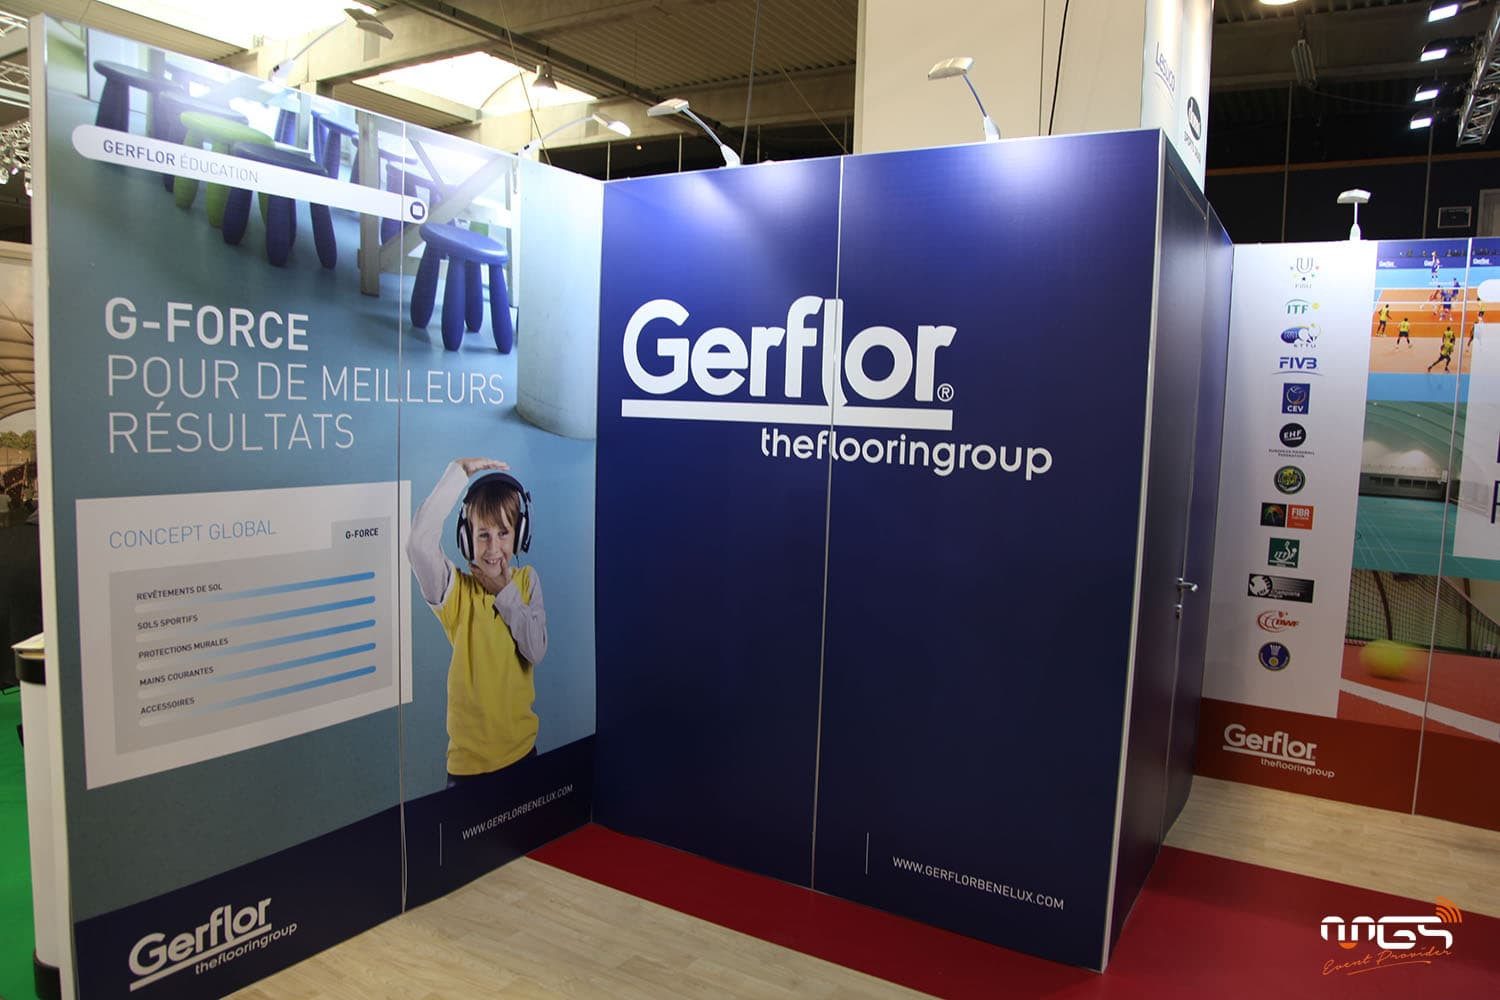 Conception du stand Gerflor par MGS